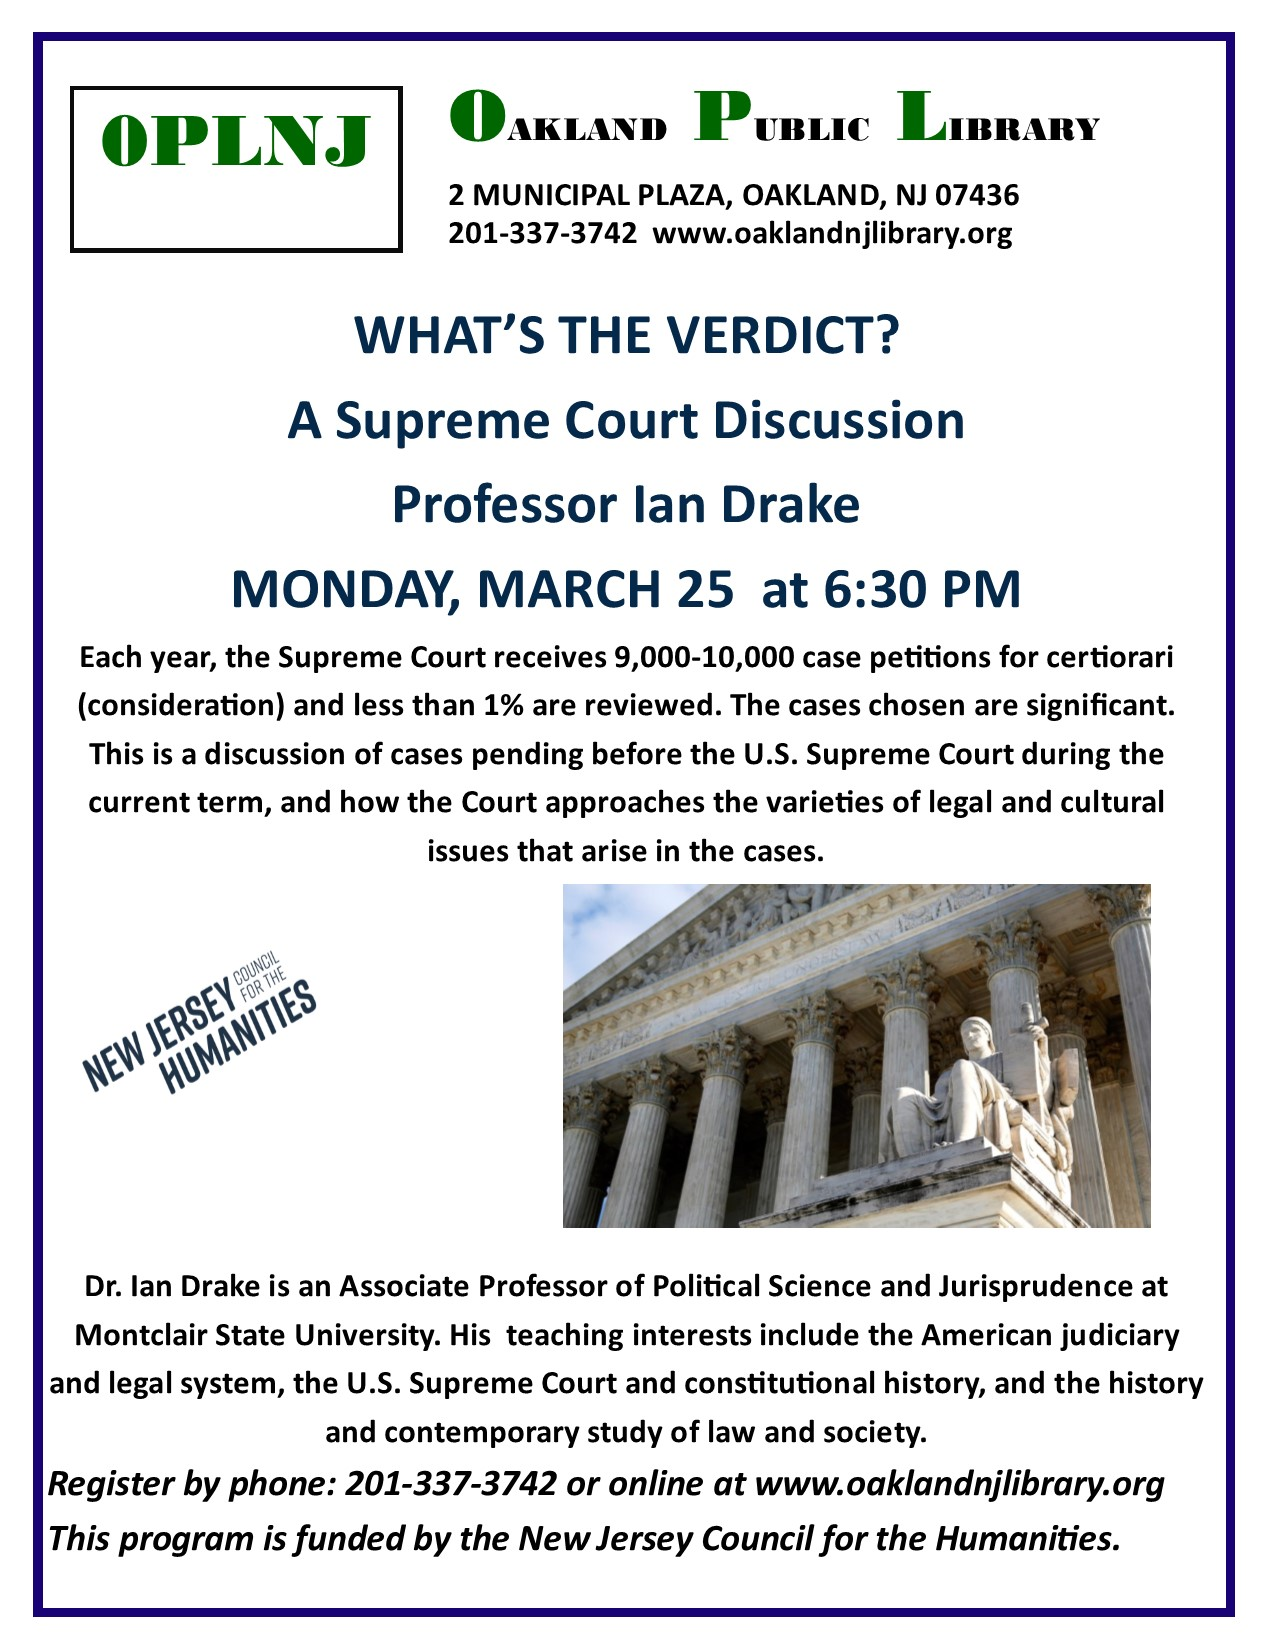 What's the Verdict? A Supreme Court Discussion